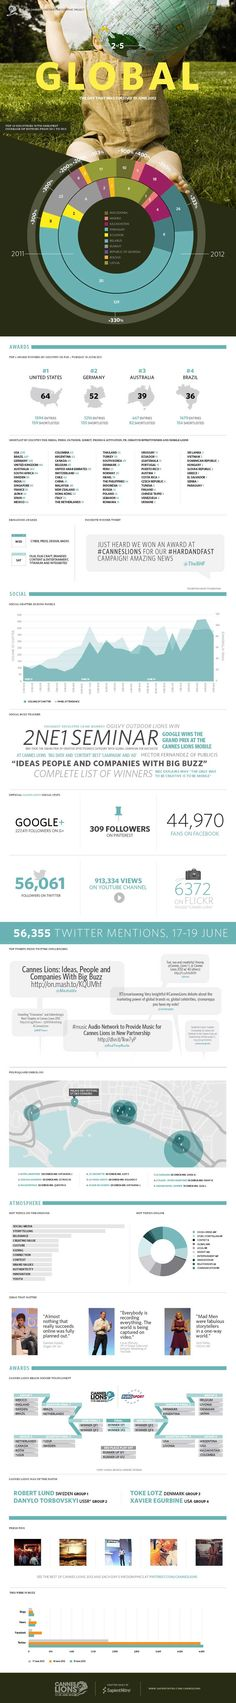 Cannes Lions through a global lens [infogrpahic]